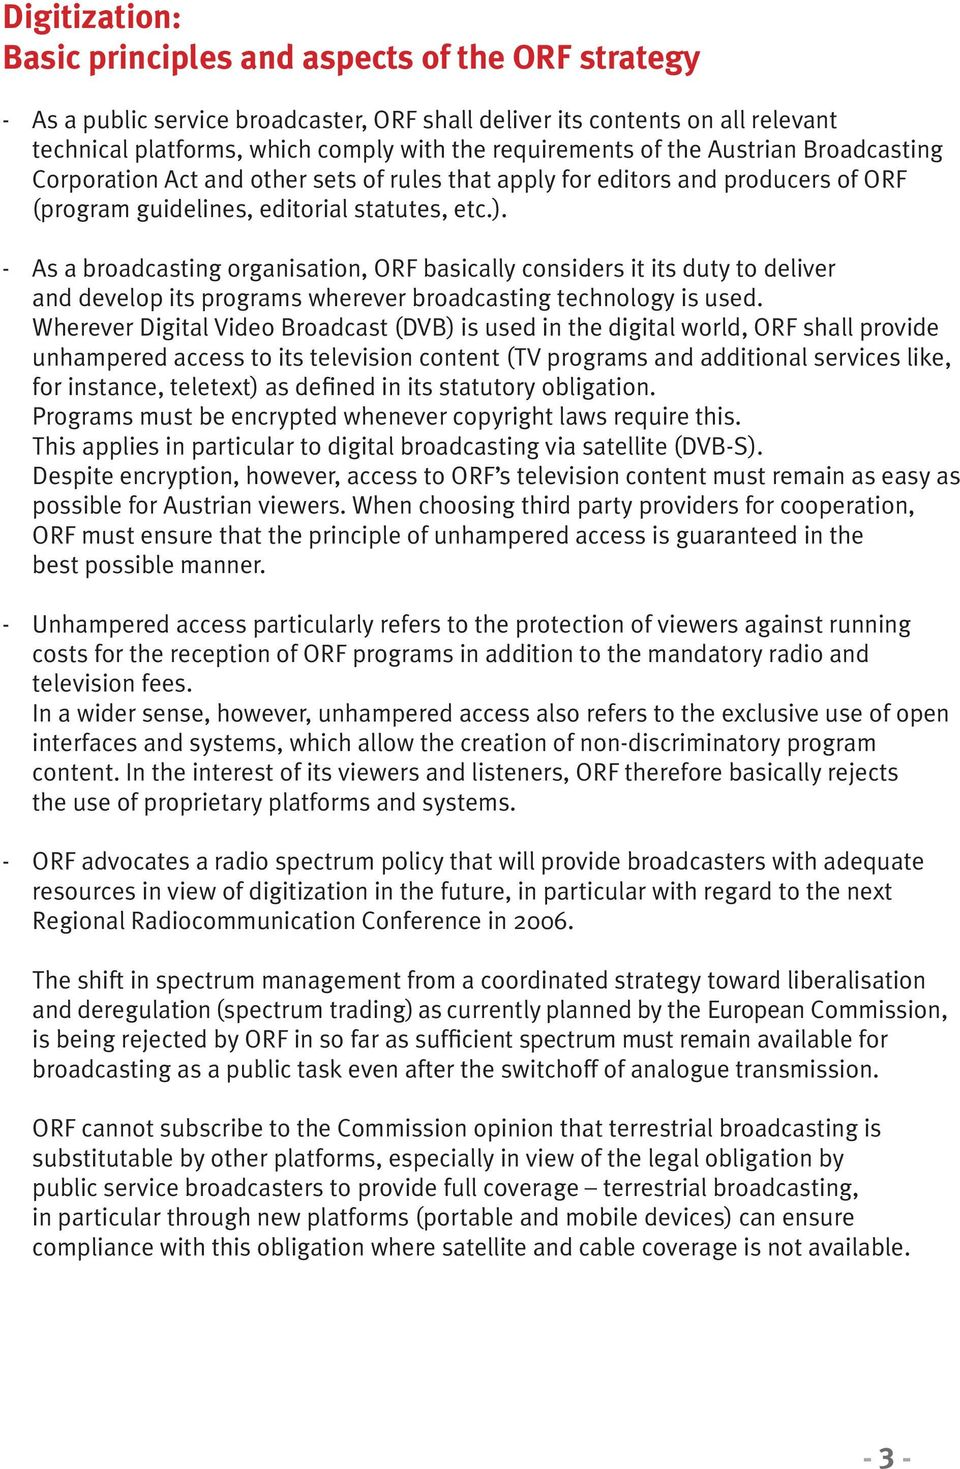 - As a broadcasting organisation, ORF basically considers it its duty to deliver and develop its programs wherever broadcasting technology is used.